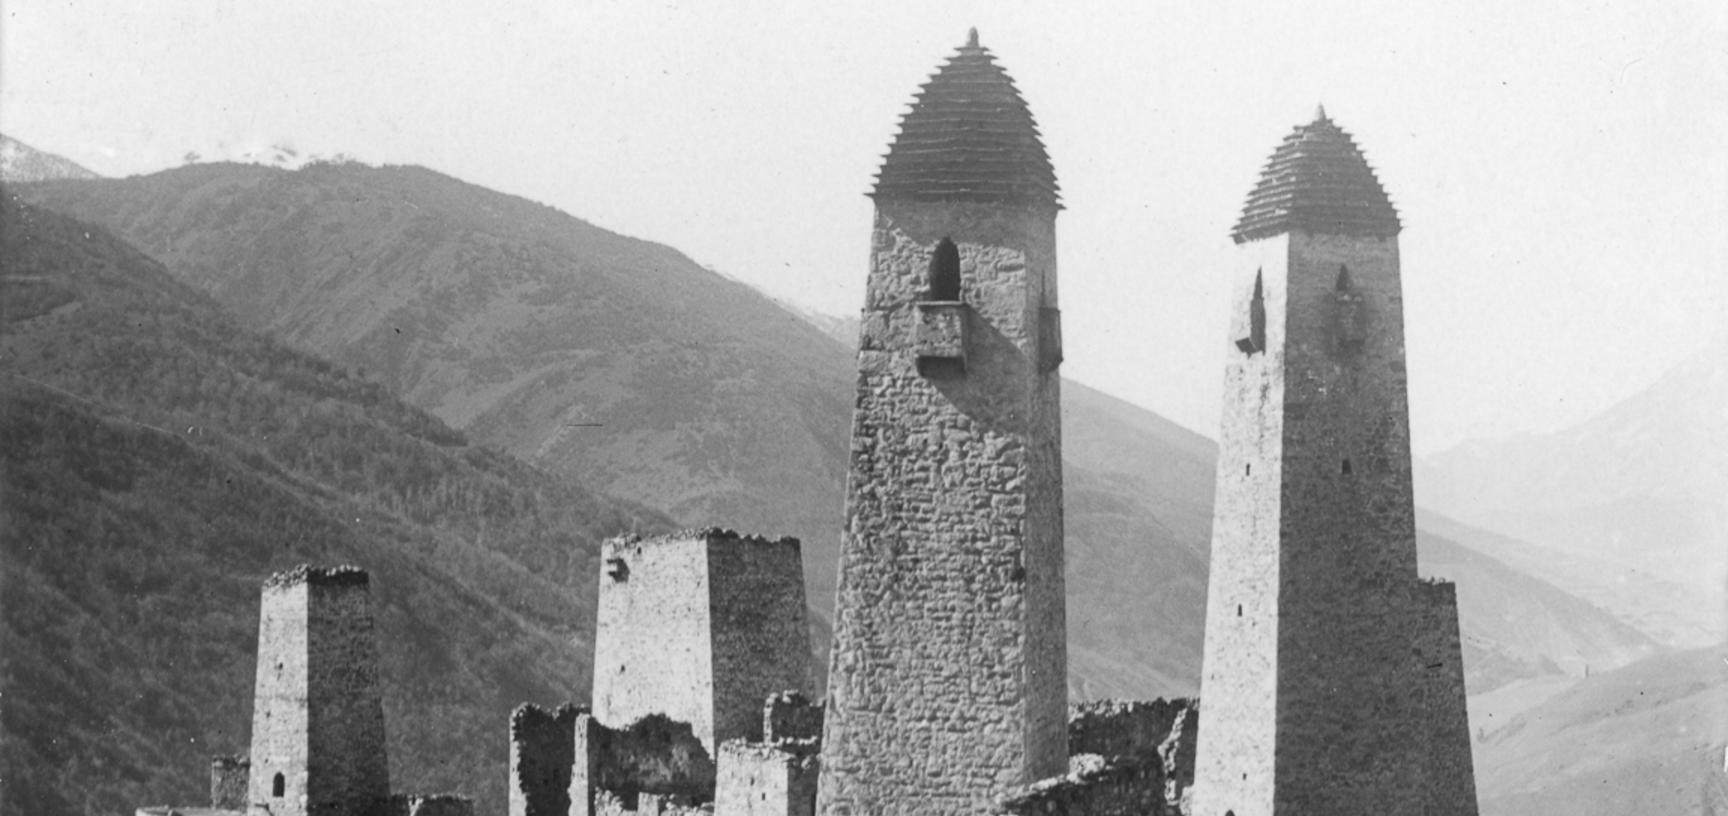 Look-out and refuge towers in Arzee. Similar towers were built all over the eastern Caucasus, though few remain today. Photograph by John Baddeley. Arzee, Russia. October 1901.